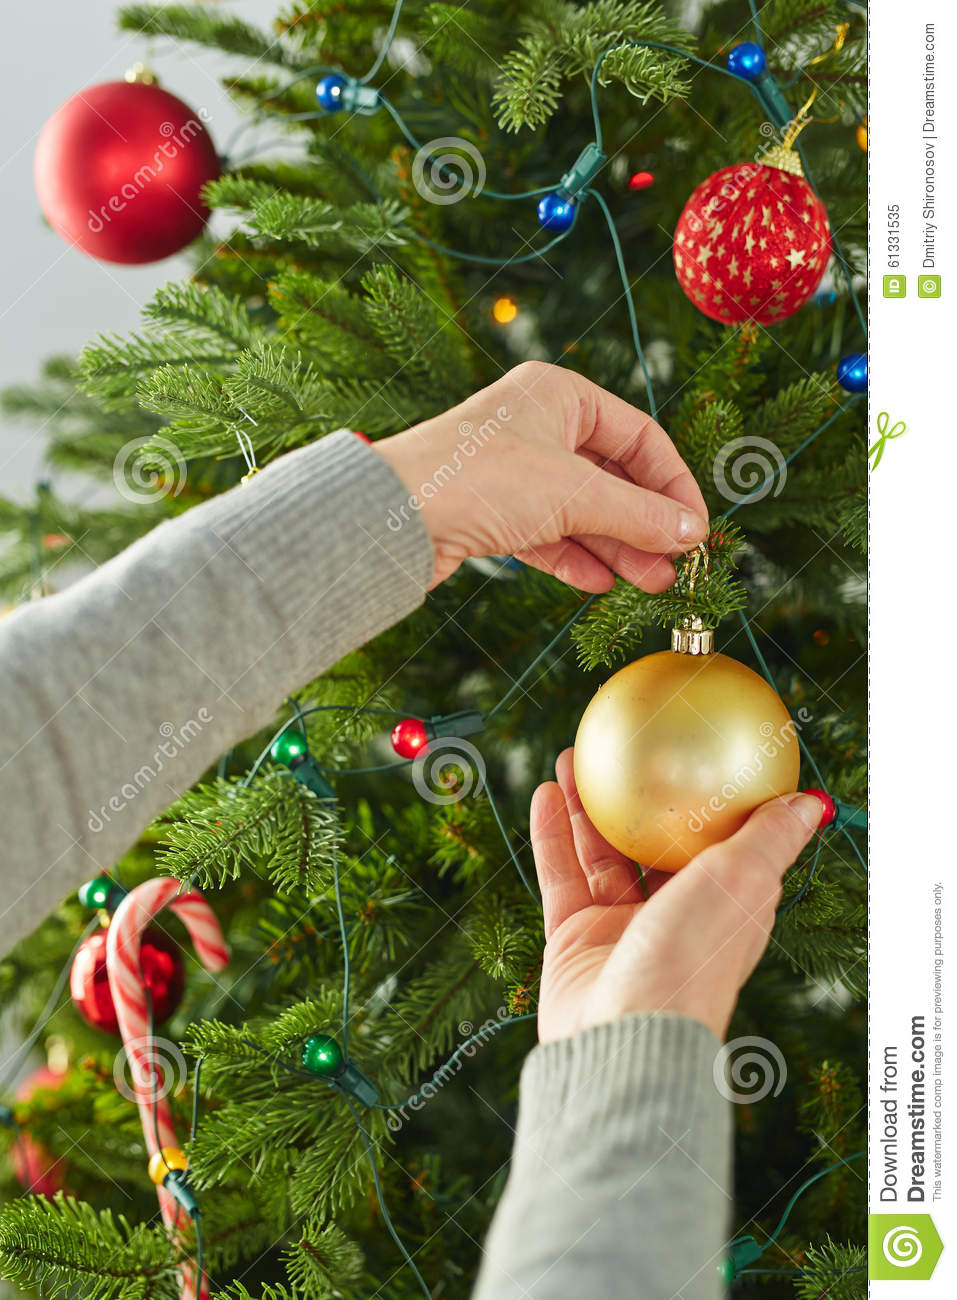 Human hand holding toy bubble on branch of decorated christmas tree